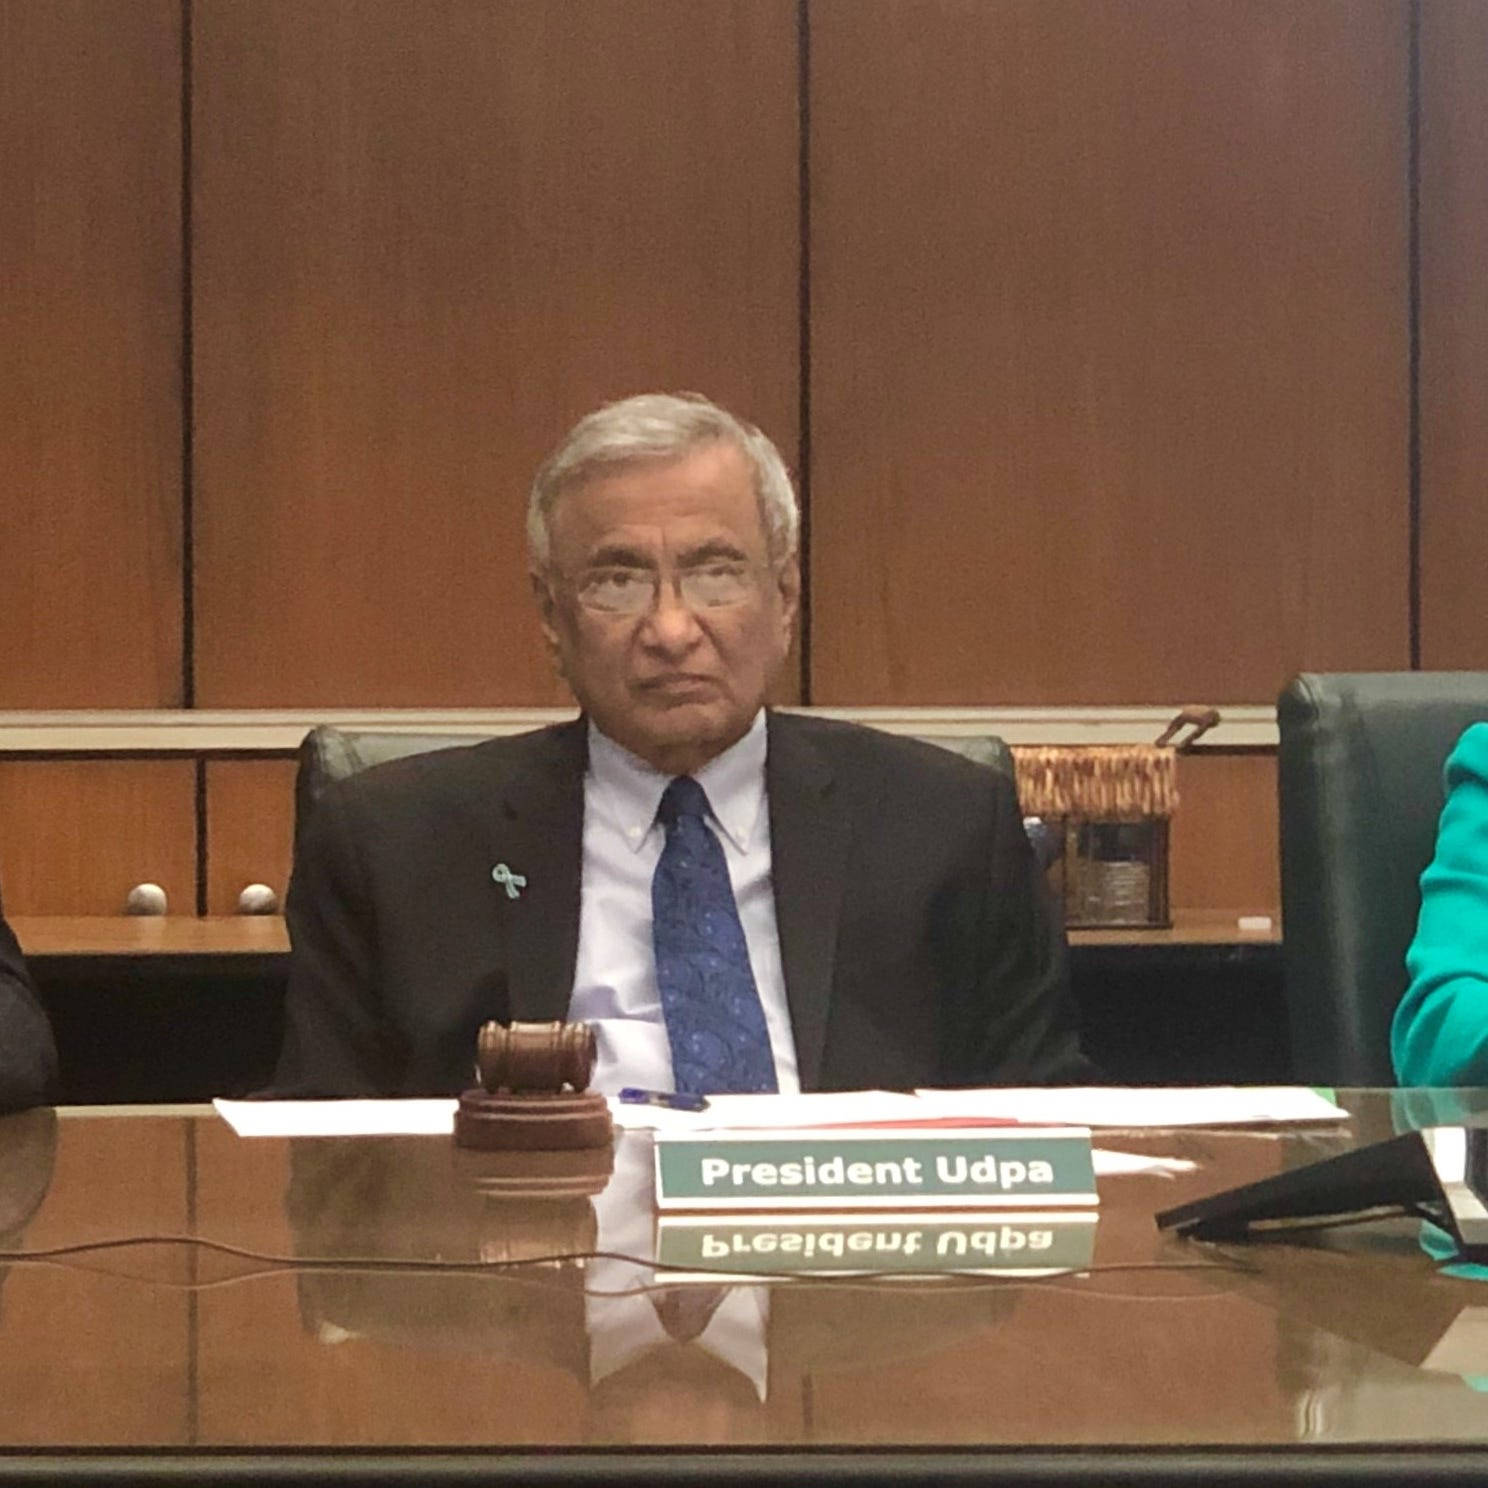 MSU Acting President Udpa to Nassar victims: 'We let you down'